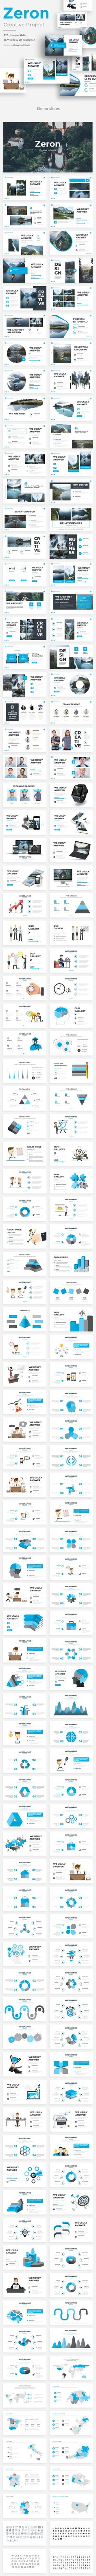 Buy Zeron Creative Powerpoint Template by onepercent on GraphicRiver. General Features well designed slides Easy customizable contents Modern, clean style Editable Icons as Vector sh. Brochure Layout, Brochure Design, Presentation Design, Presentation Templates, Presentation Slides, Table Planner, Teacher Resume Template, Creative Powerpoint Templates, Magazine Template